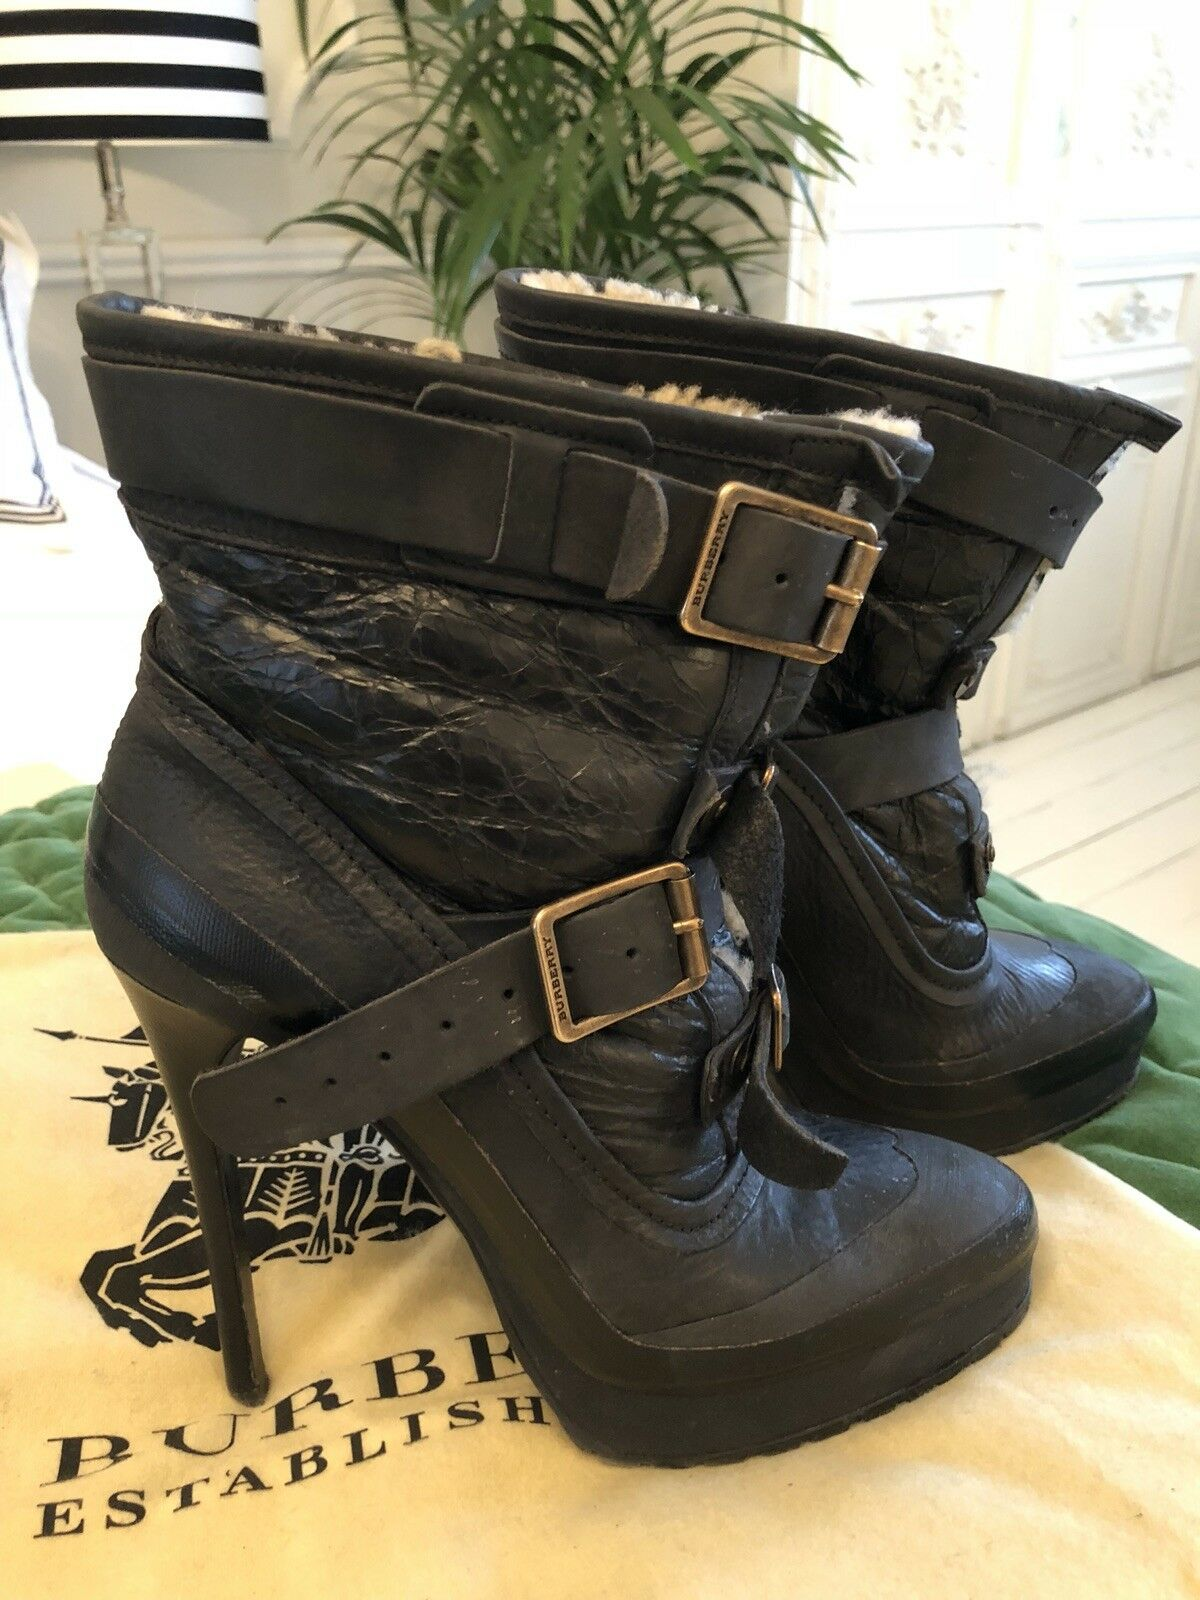 Burberry Prorsum Aviator Shearling-lined Ankle Boots UK 6, with box and dust bag